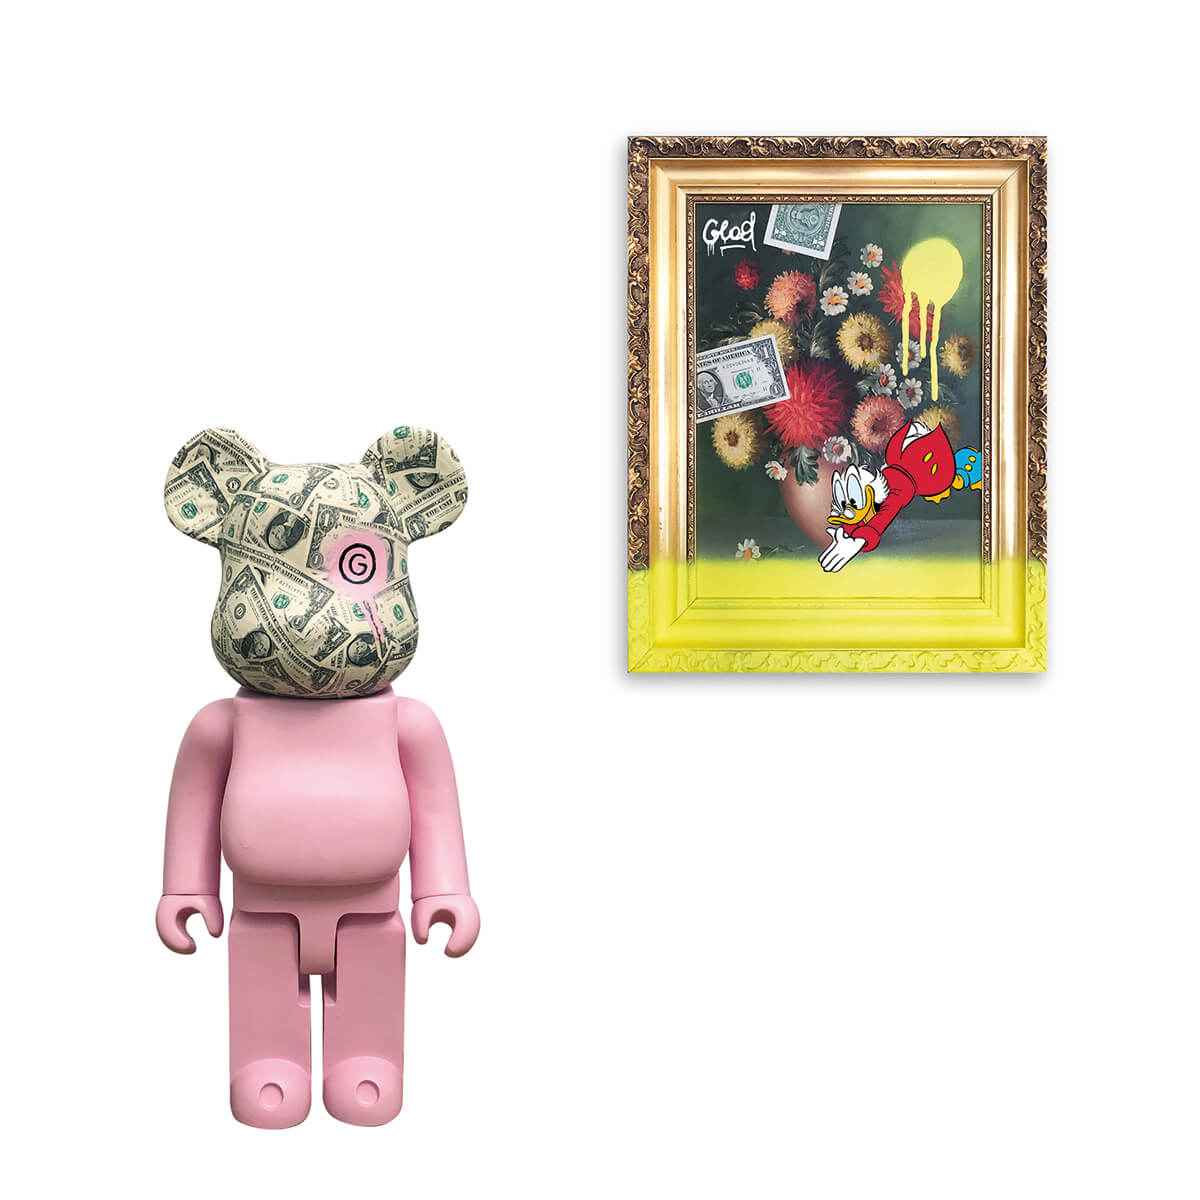 Glod-Art-Dollar-Bearbrick-Antique-Serie